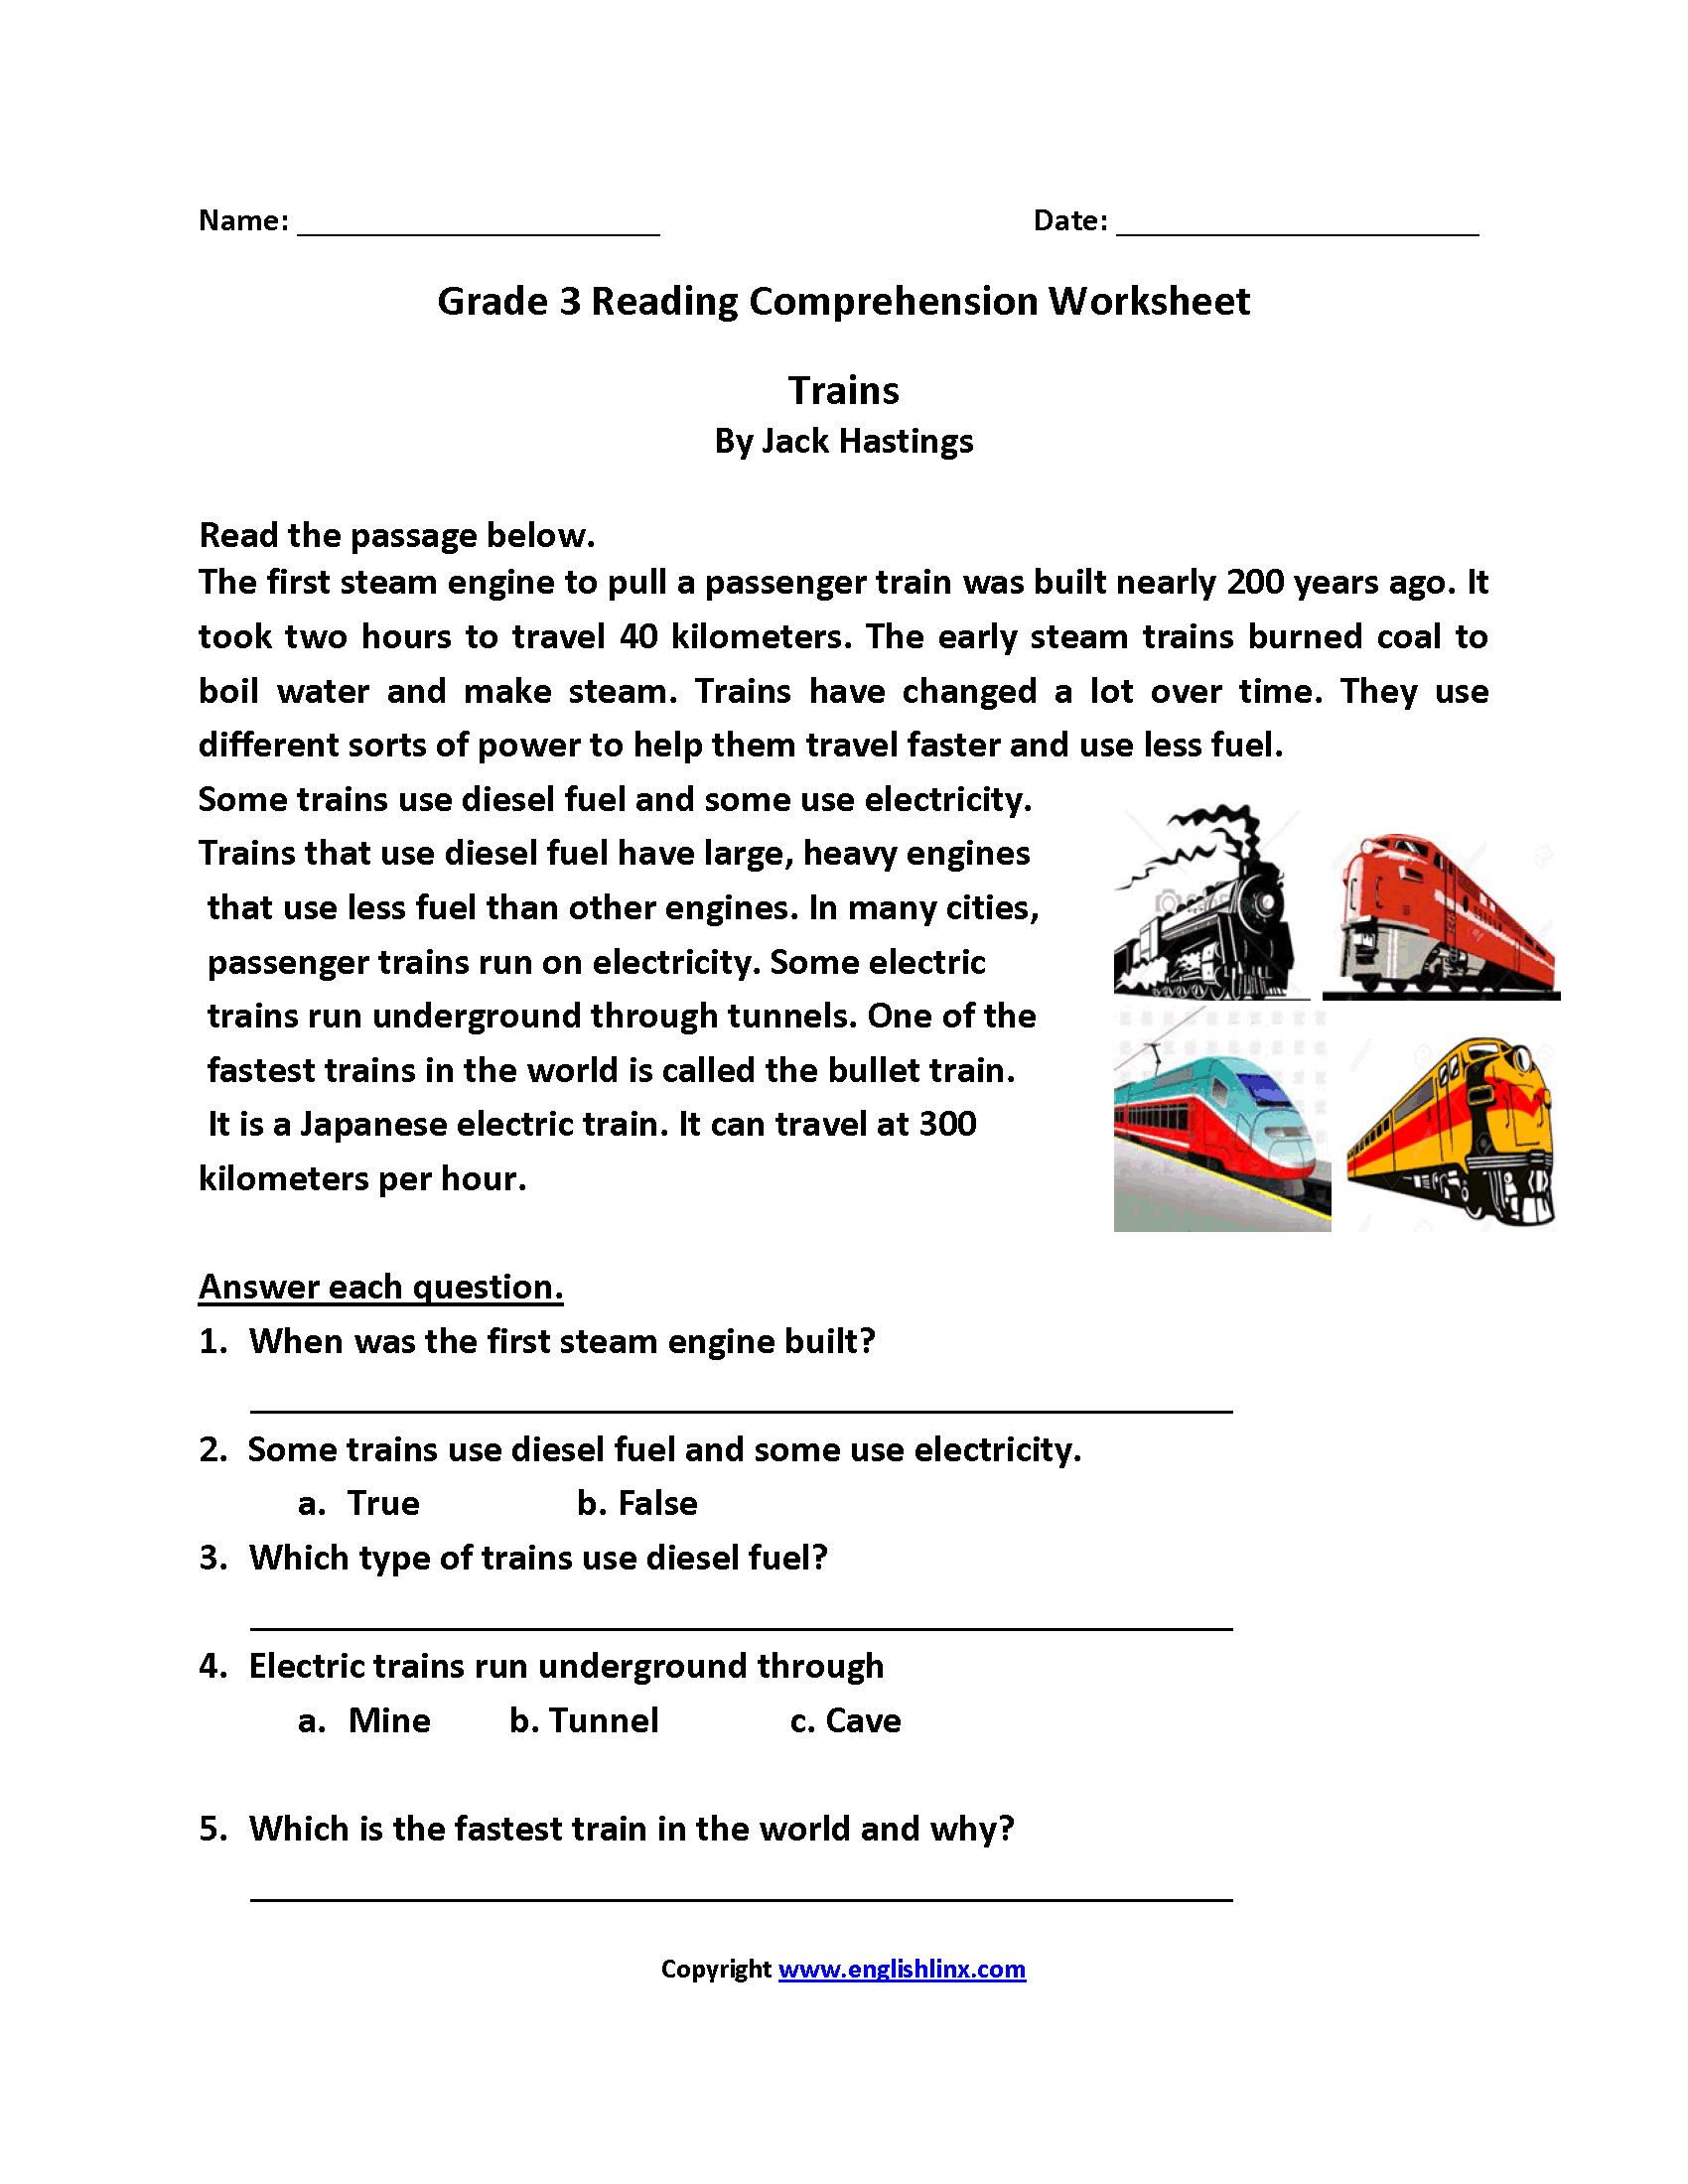 Worksheets Reading Comprehension Worksheets For Third